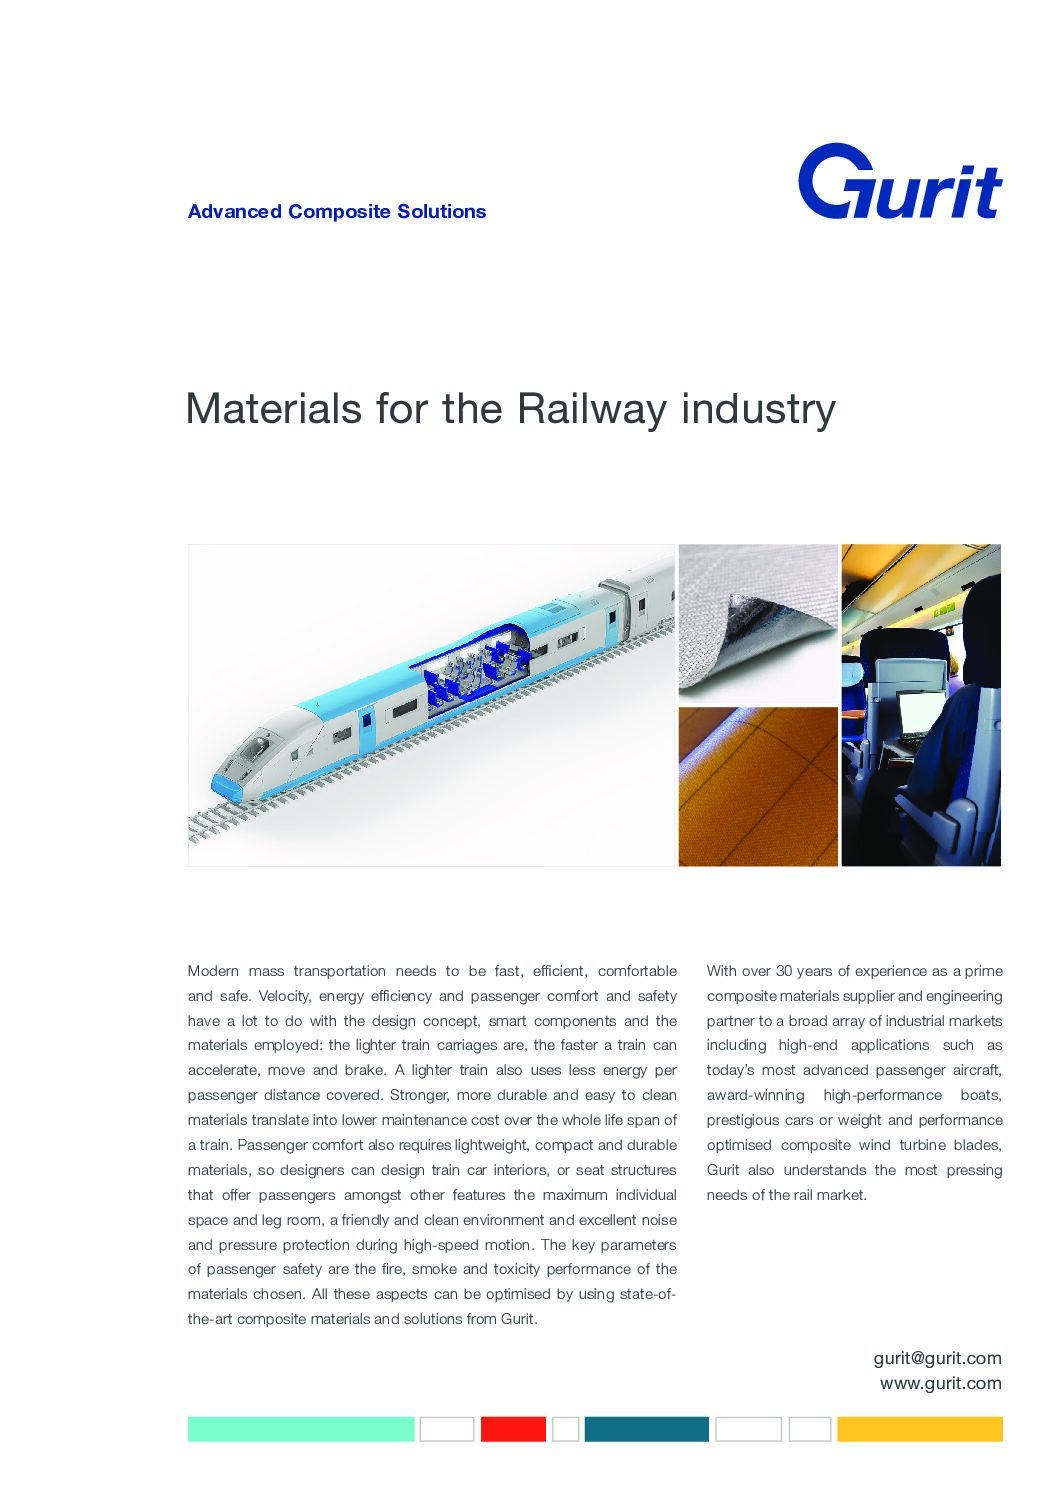 Materials for the Railway Industry